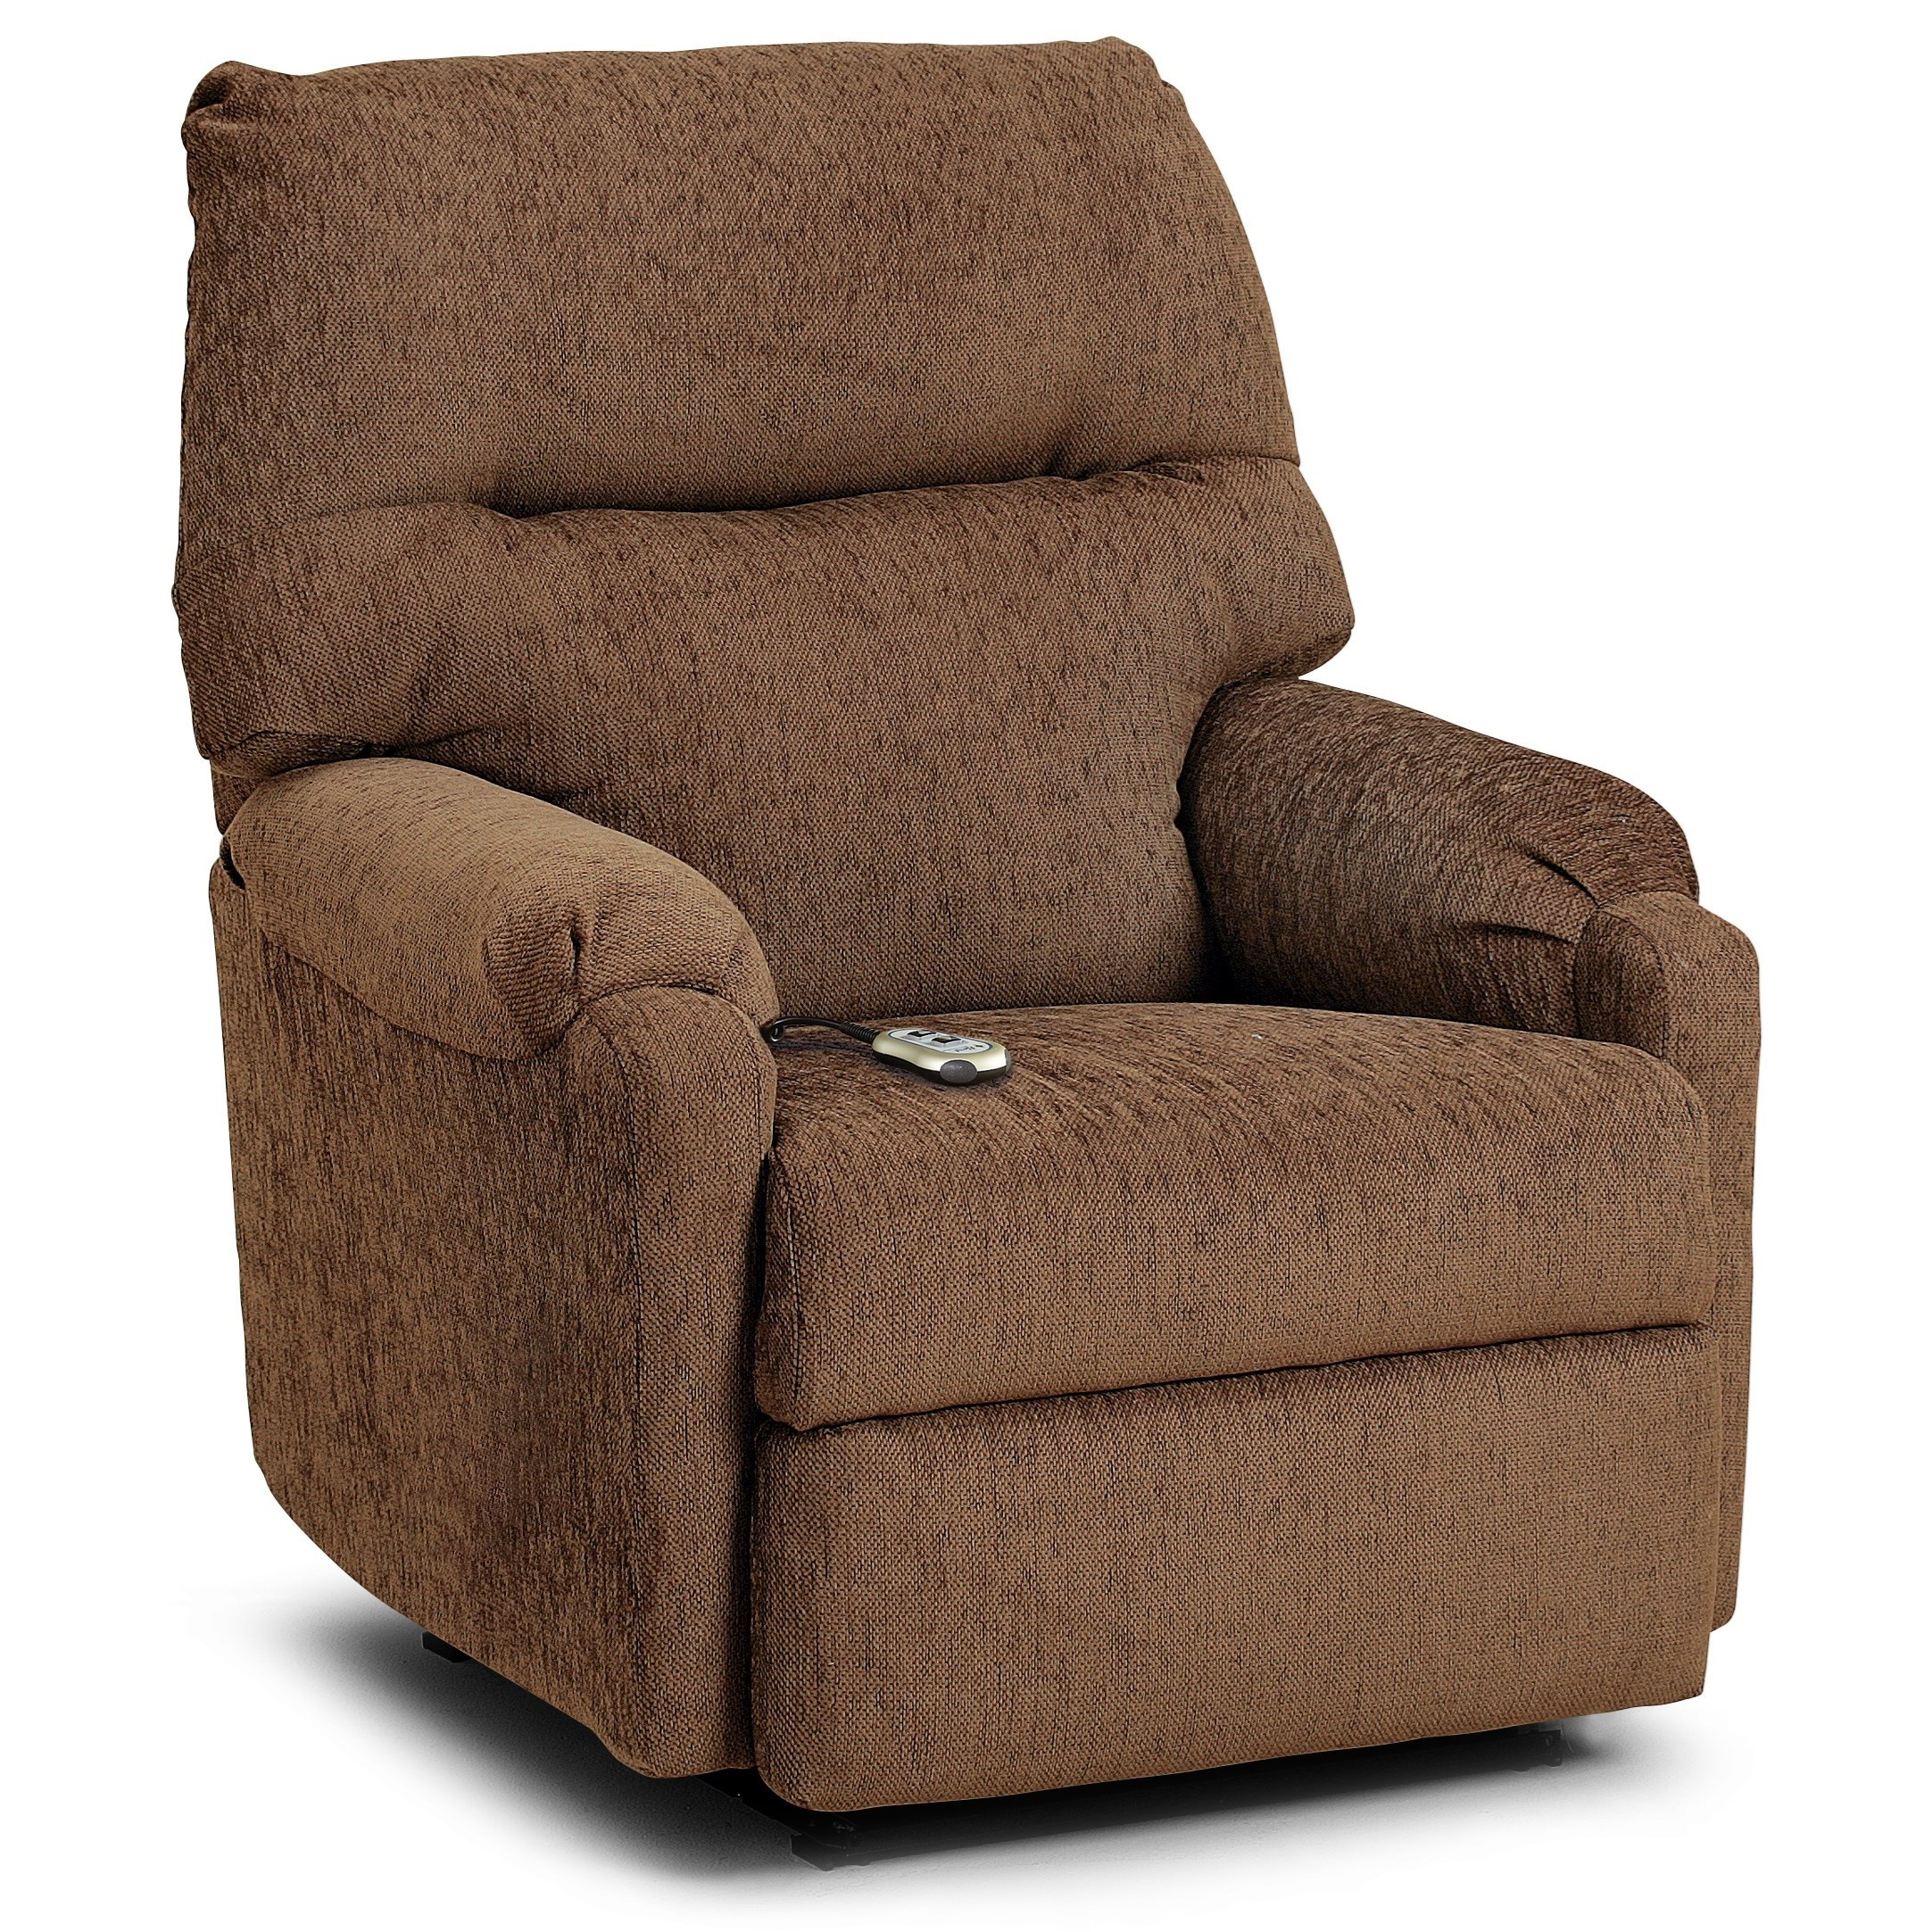 Petite Recliners JoJo Power Lift Recliner by Best Home Furnishings at Baer's Furniture